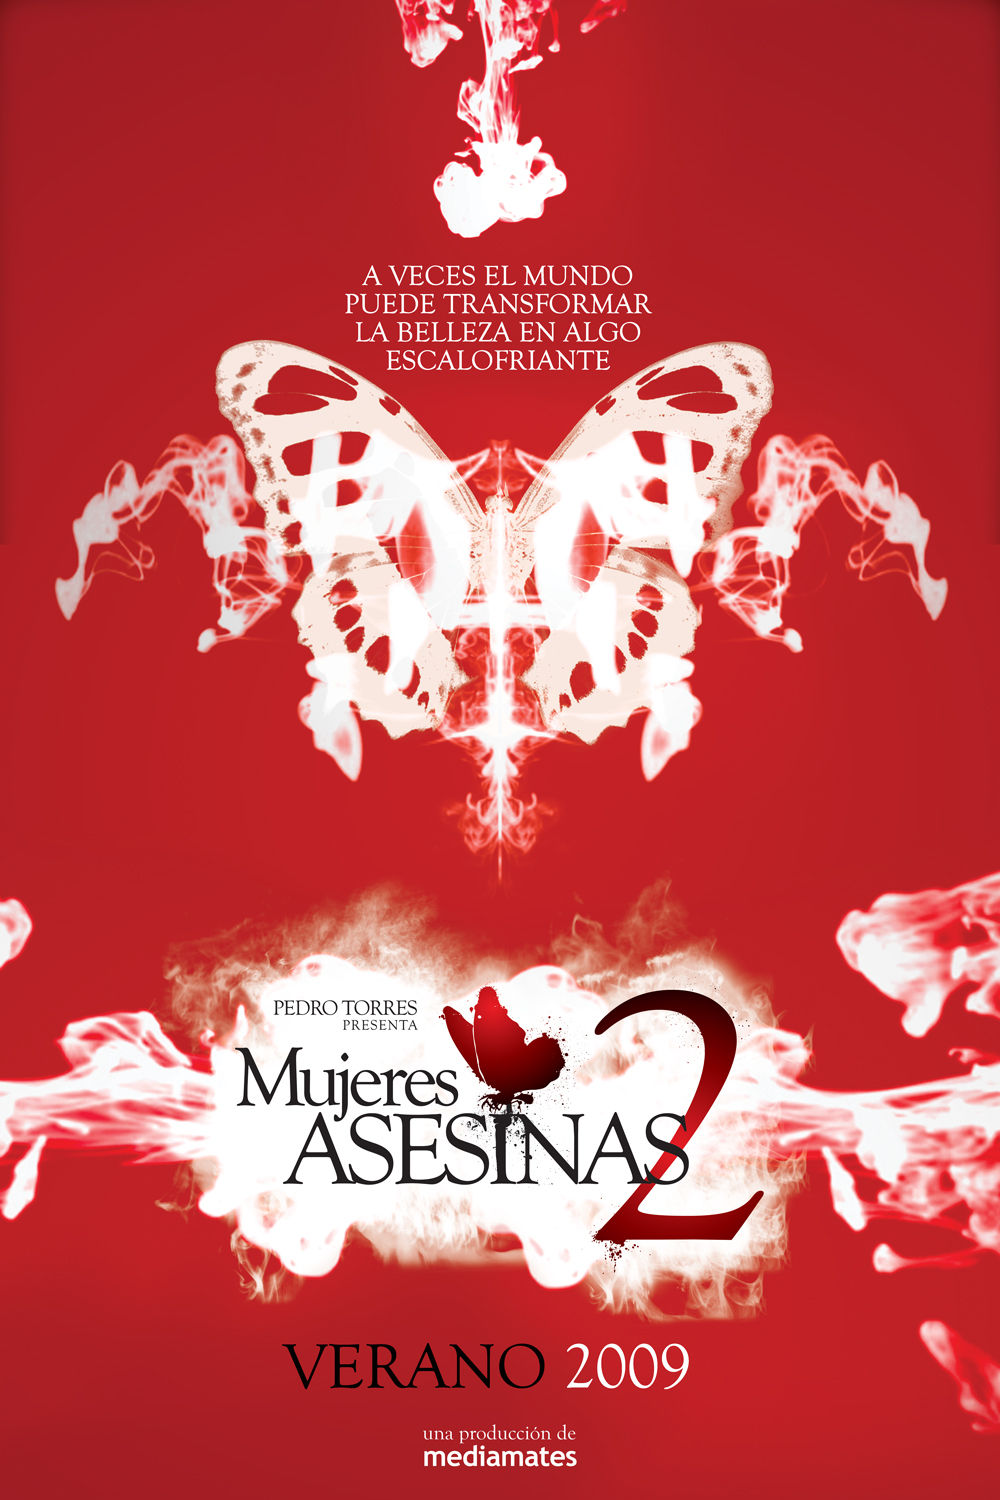 Mujeres Asesinas 2 / Title sequence & Marketing campaign